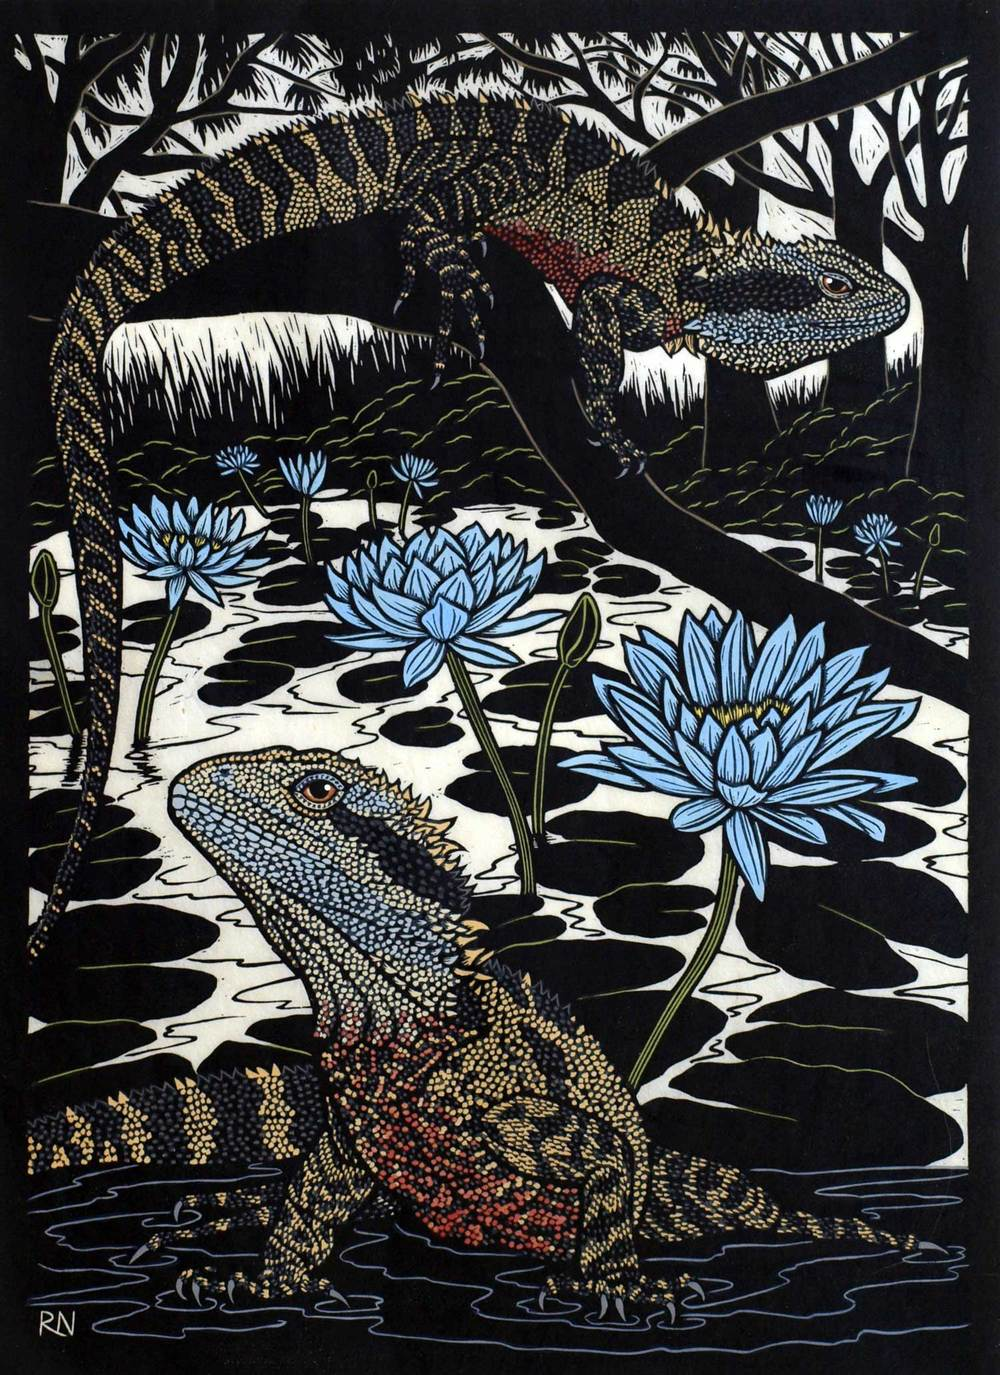 WATER DRAGON  49 X 35.5 CM EDITION OF 50  HAND COLOURED LINOCUT ON HANDMADE JAPANESE PAPER  $1,100